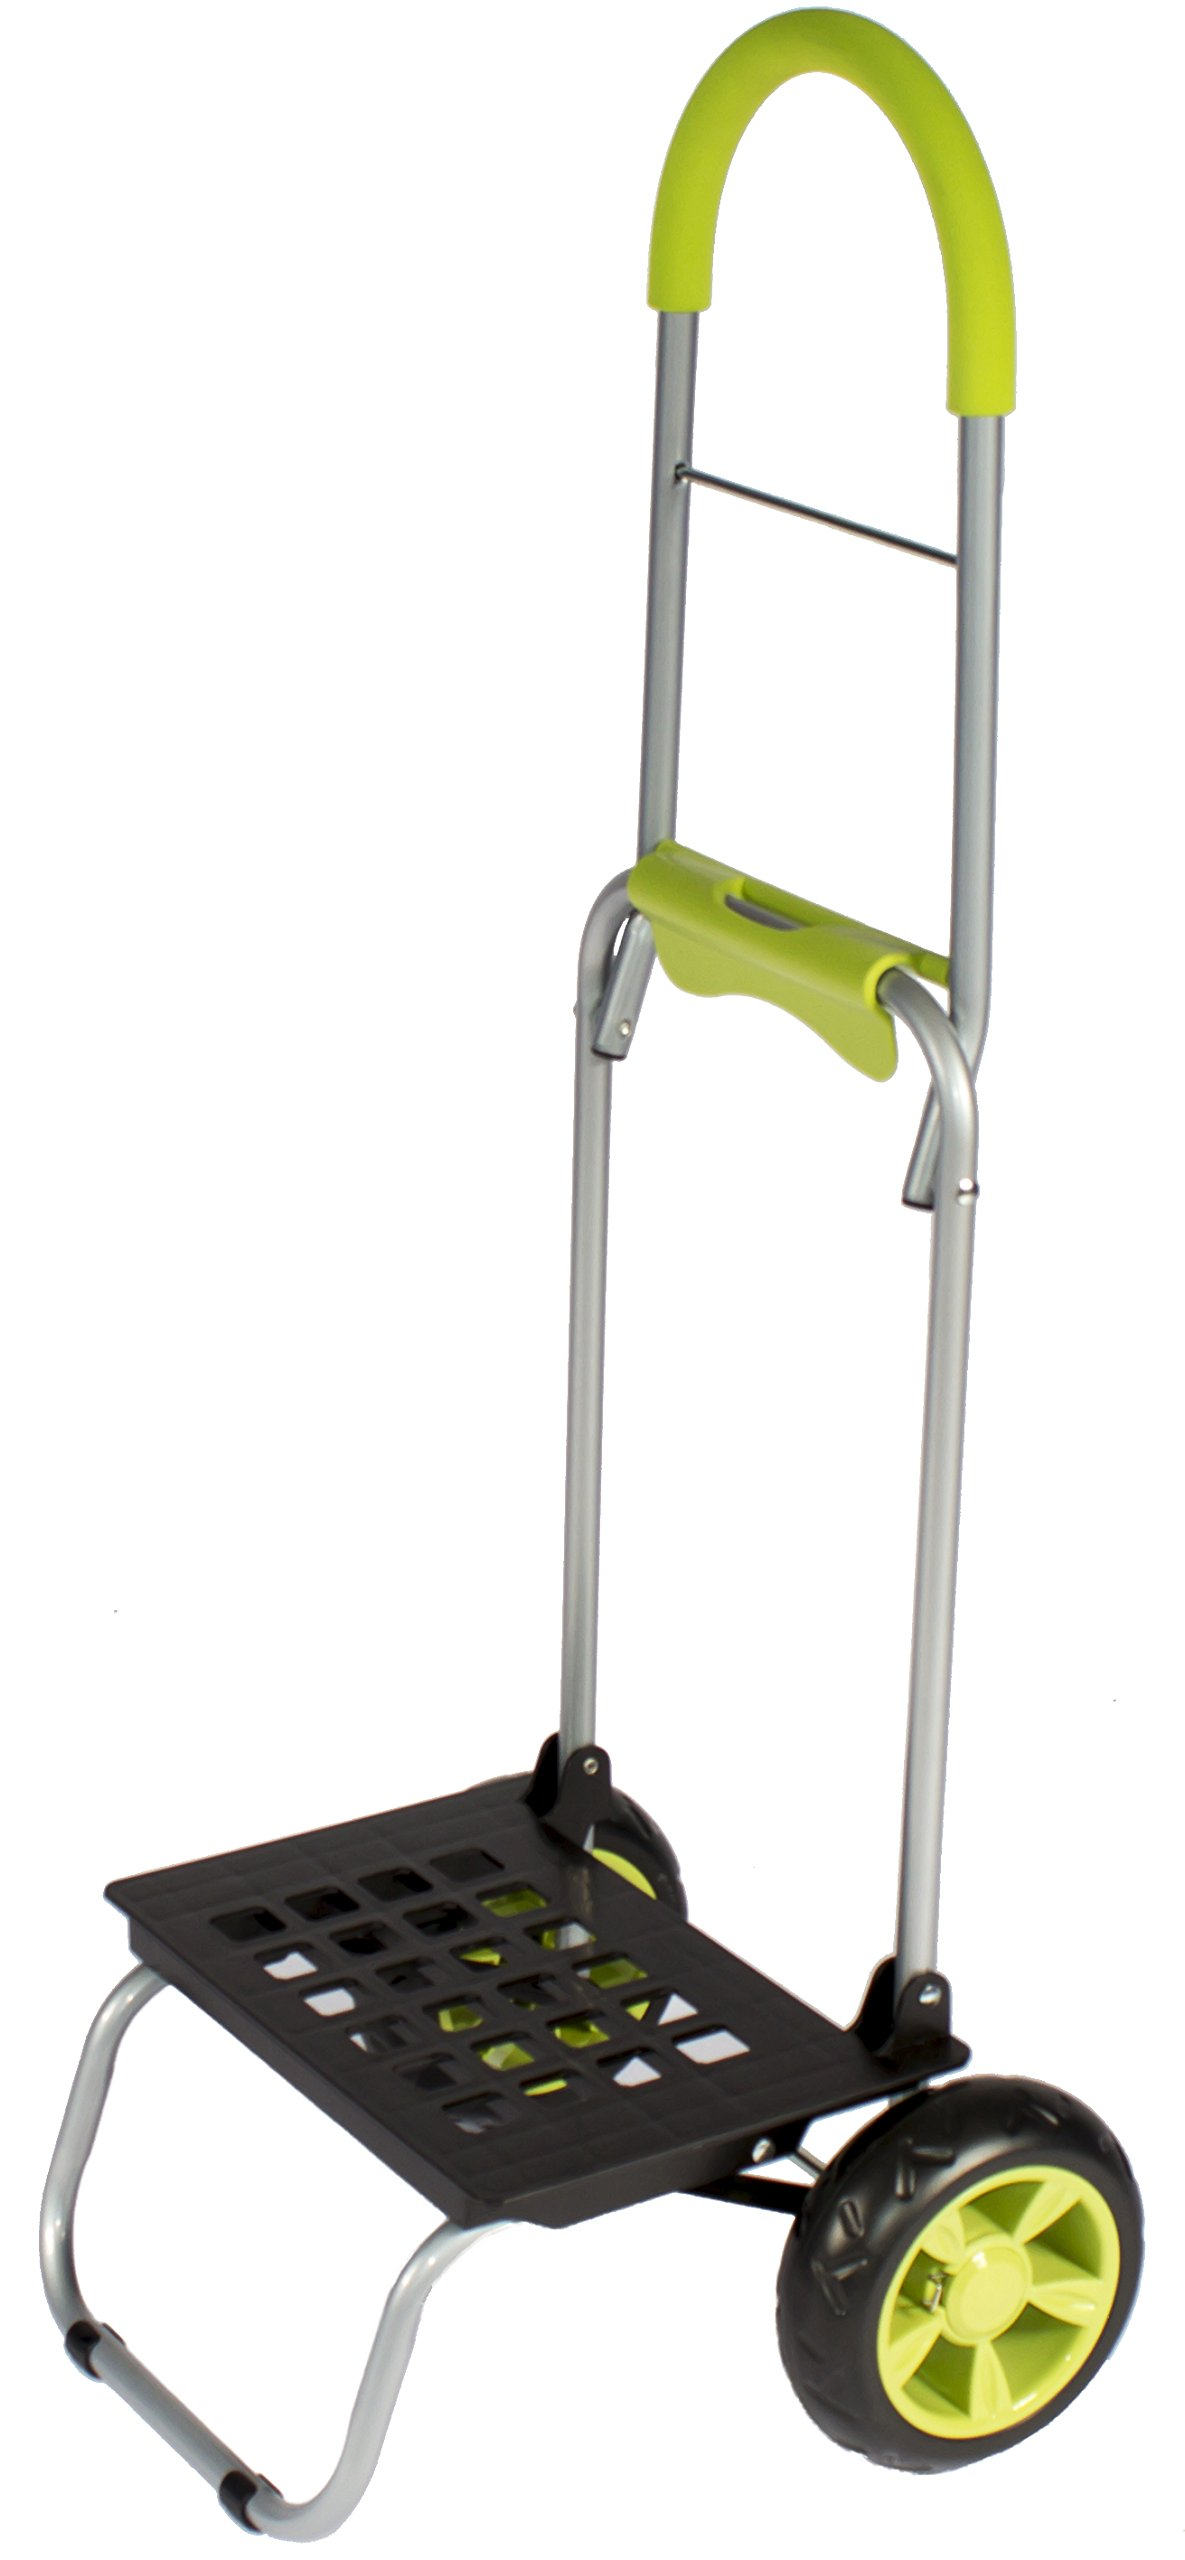 Mighty Max Personal Dolly, Lime Green Handtruck Hardware Garden Utilty Cart